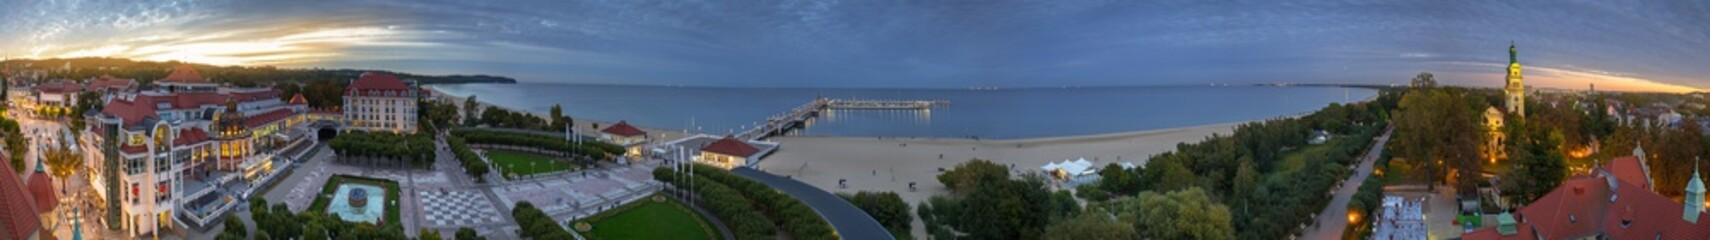 Panorama of Baltic Sea pier (Molo) in Sopot at dusk, Poland